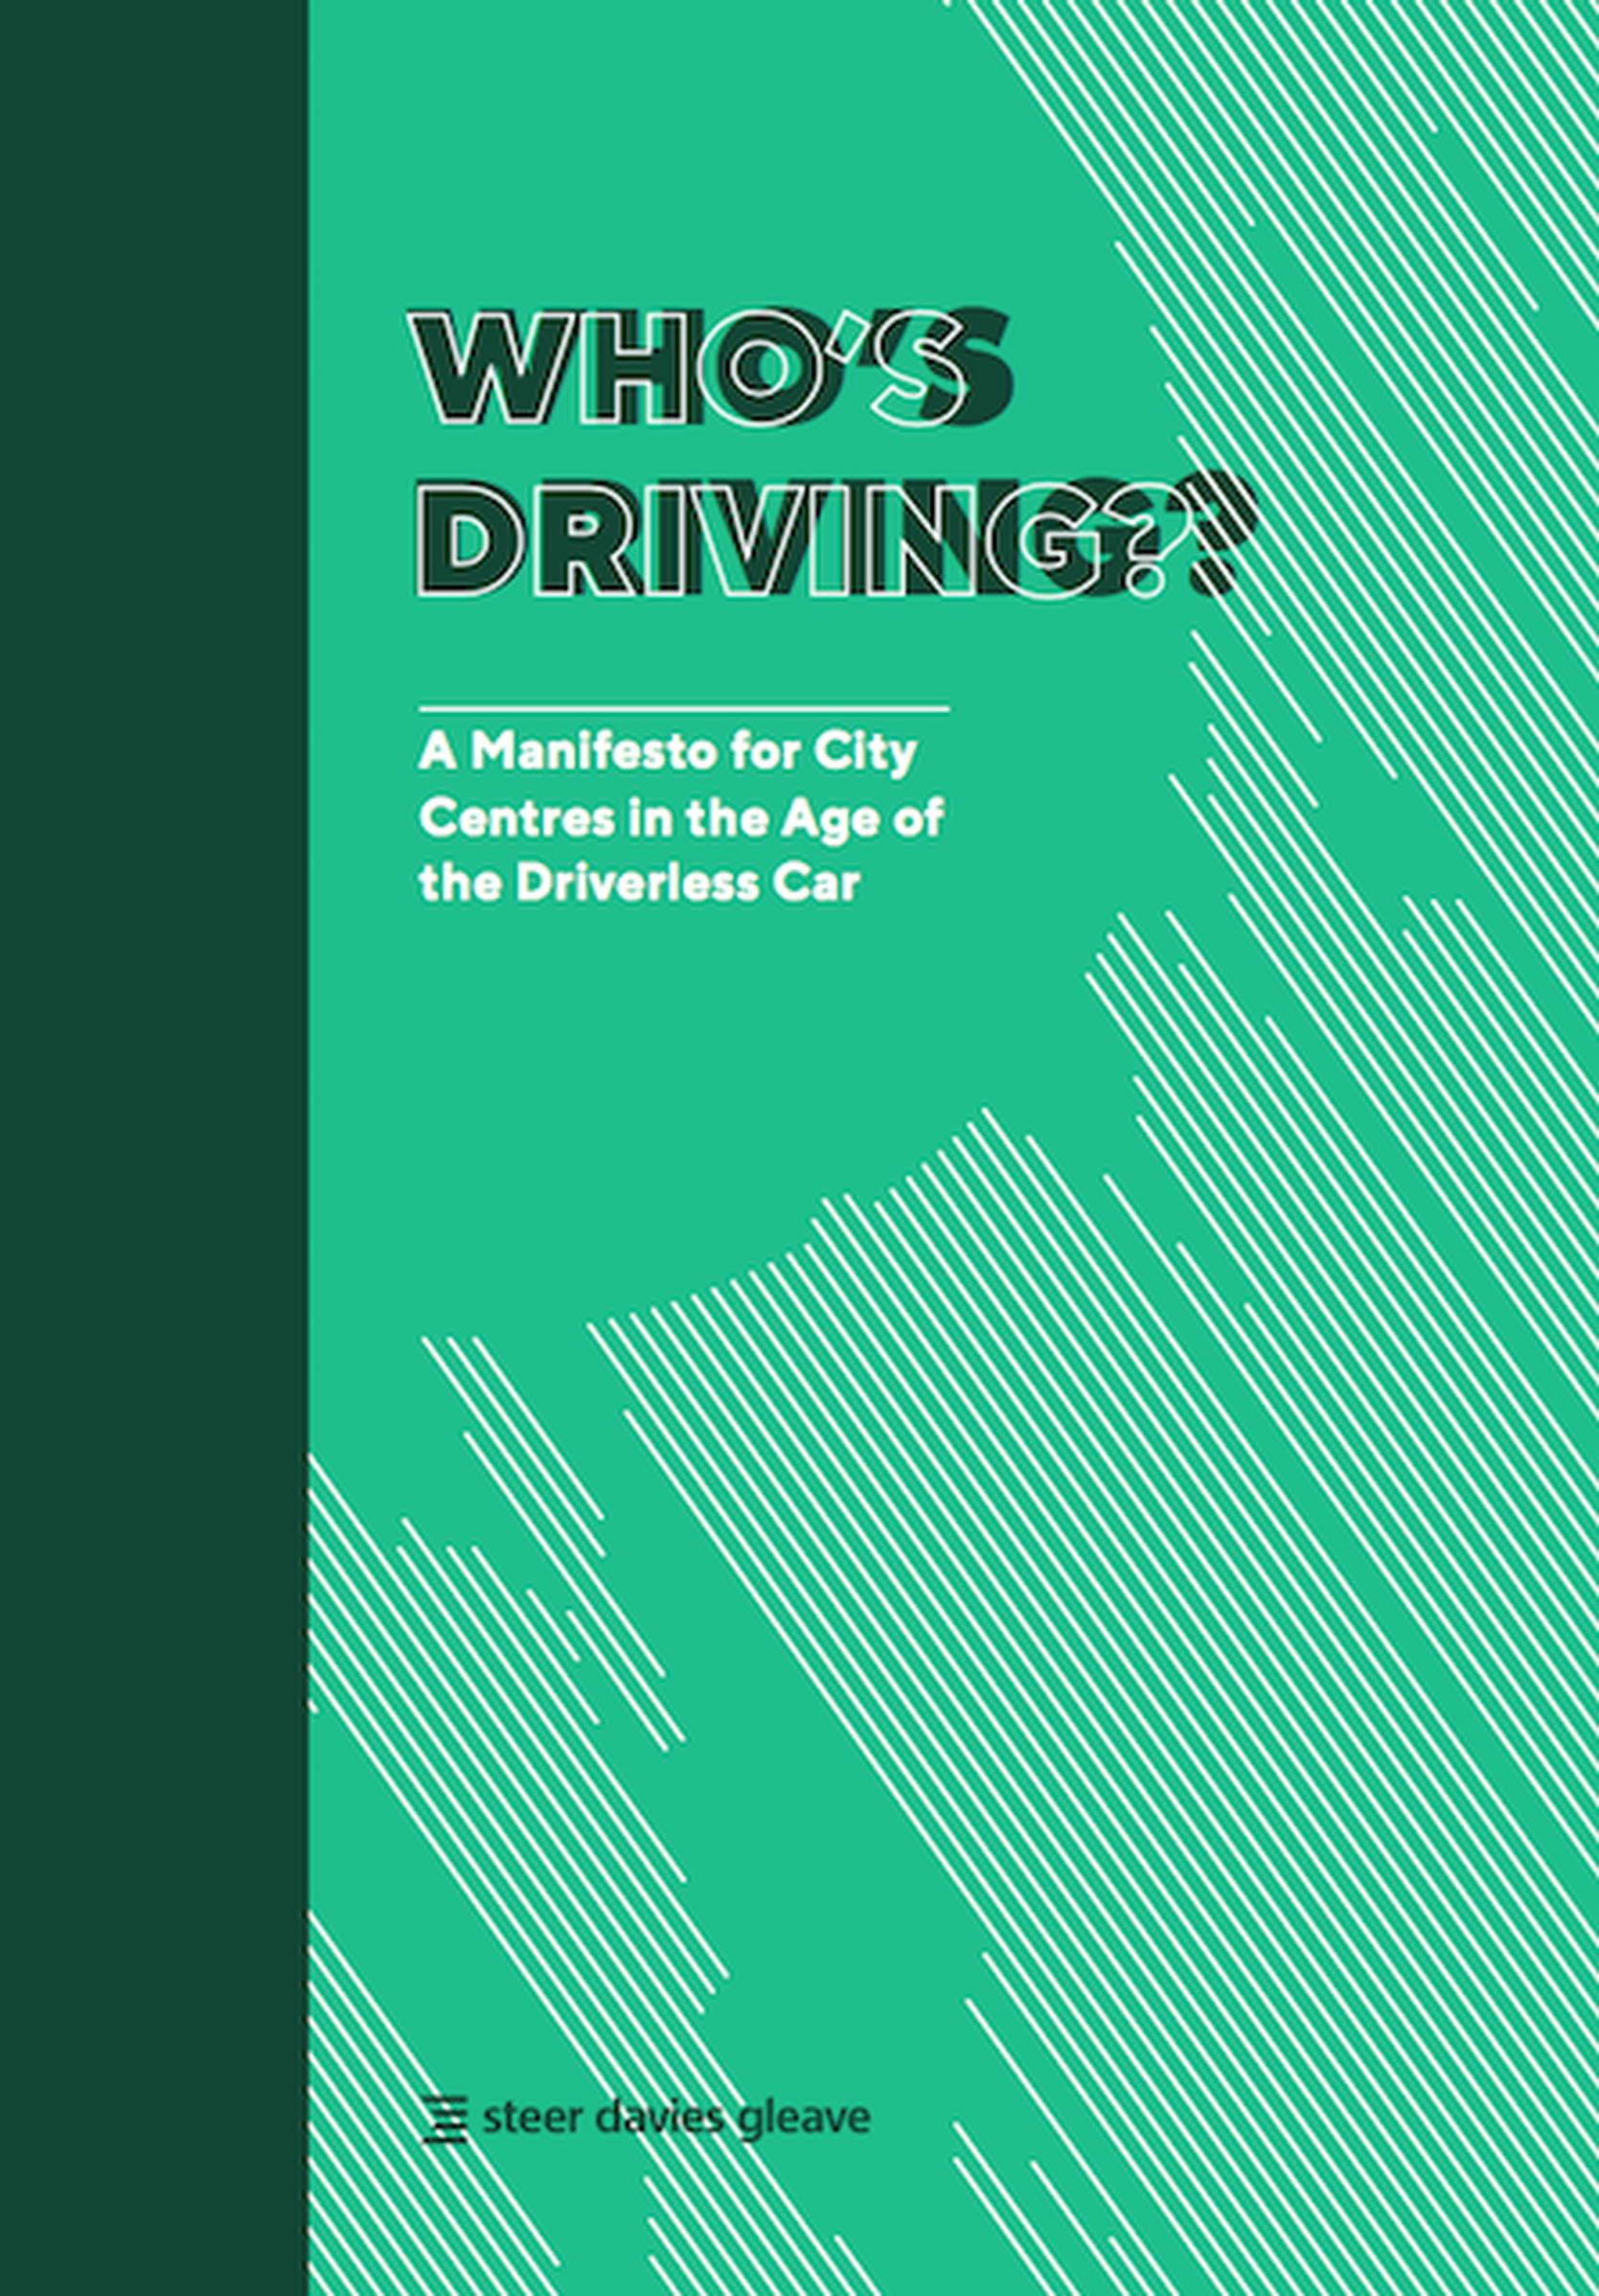 Who's Driving? A manifesto for city centres in the age of the driverless car, by Steer Davies Gleave